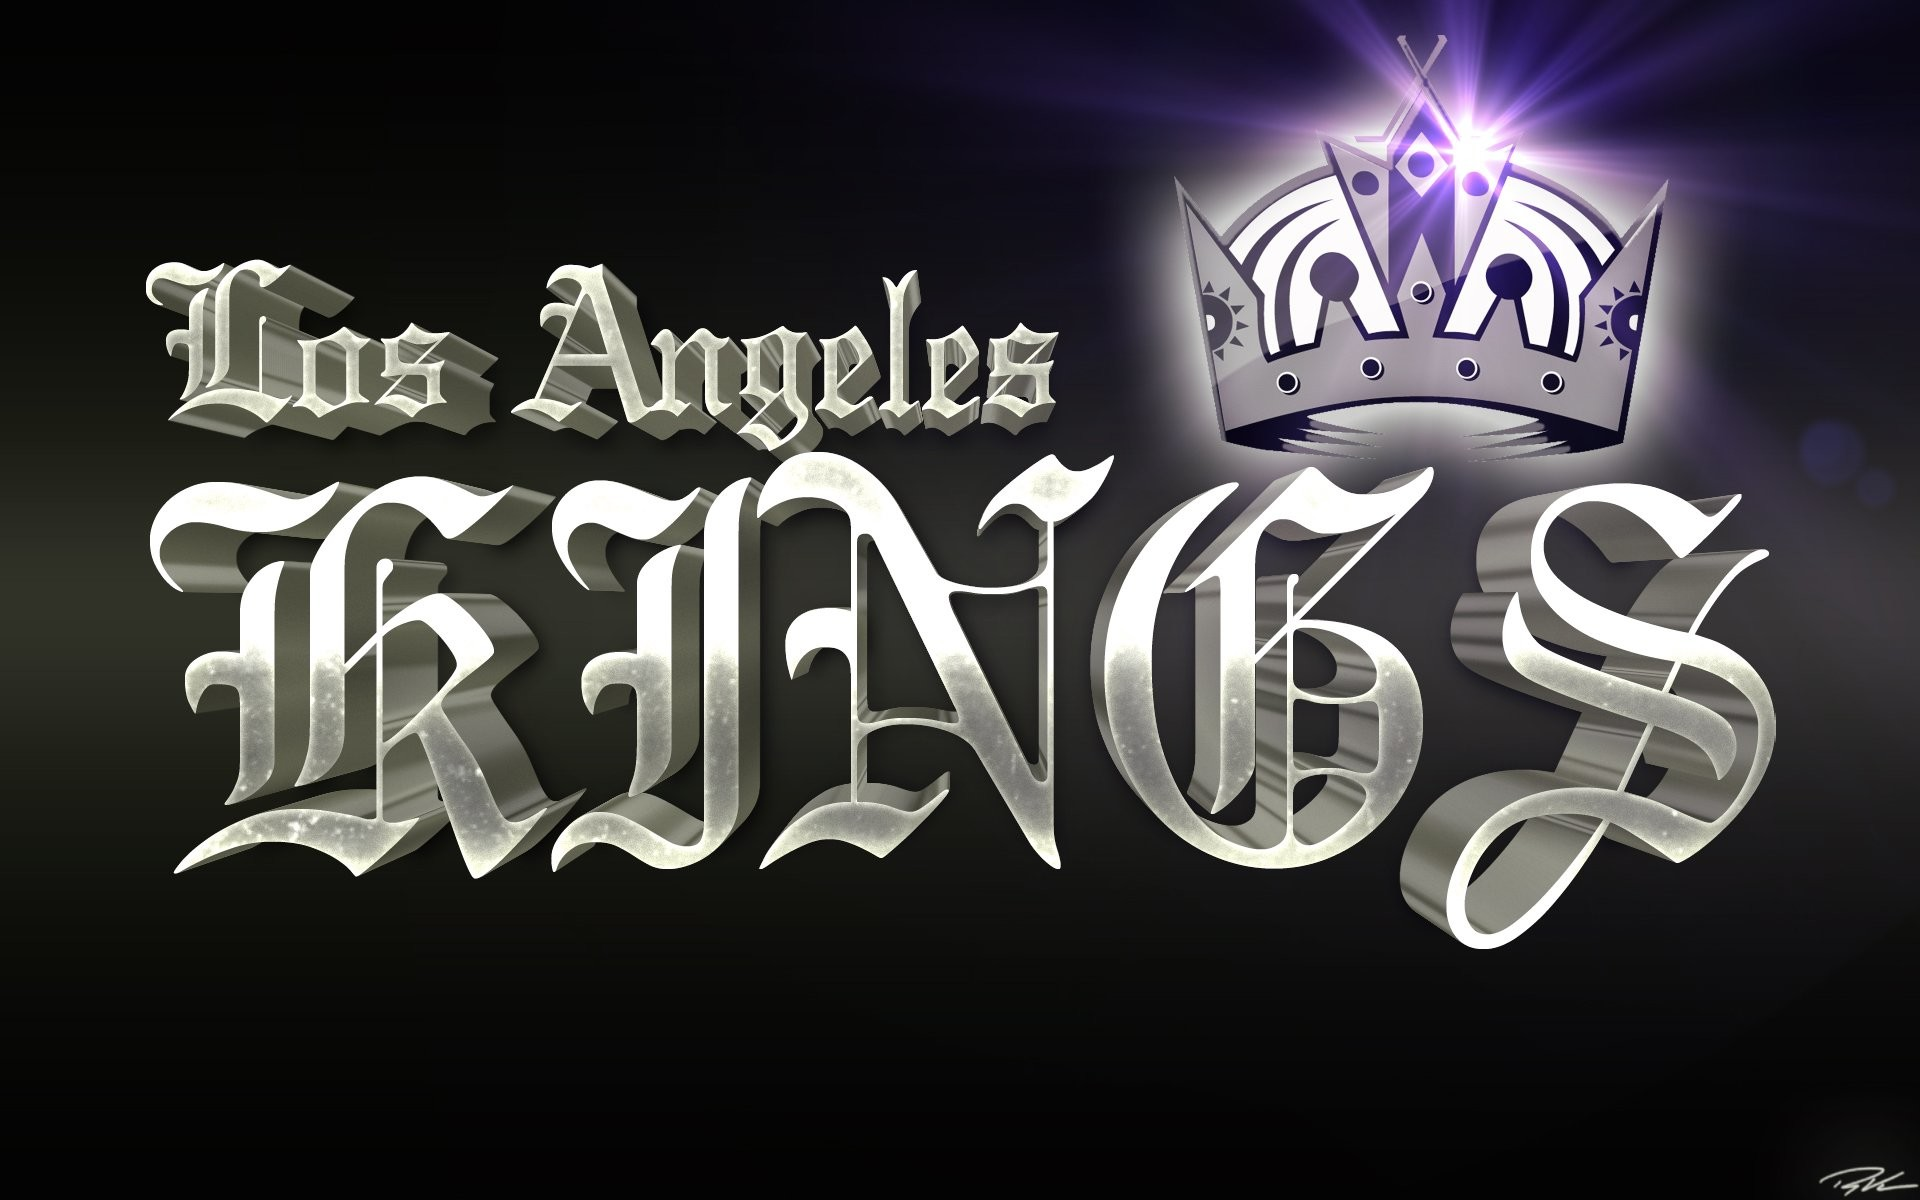 1920x1200 free la kings logo wallpaper hd wallpapers background photos apple tablet  best wallpaper ever free download pictures 1920×1200 Wallpaper HD